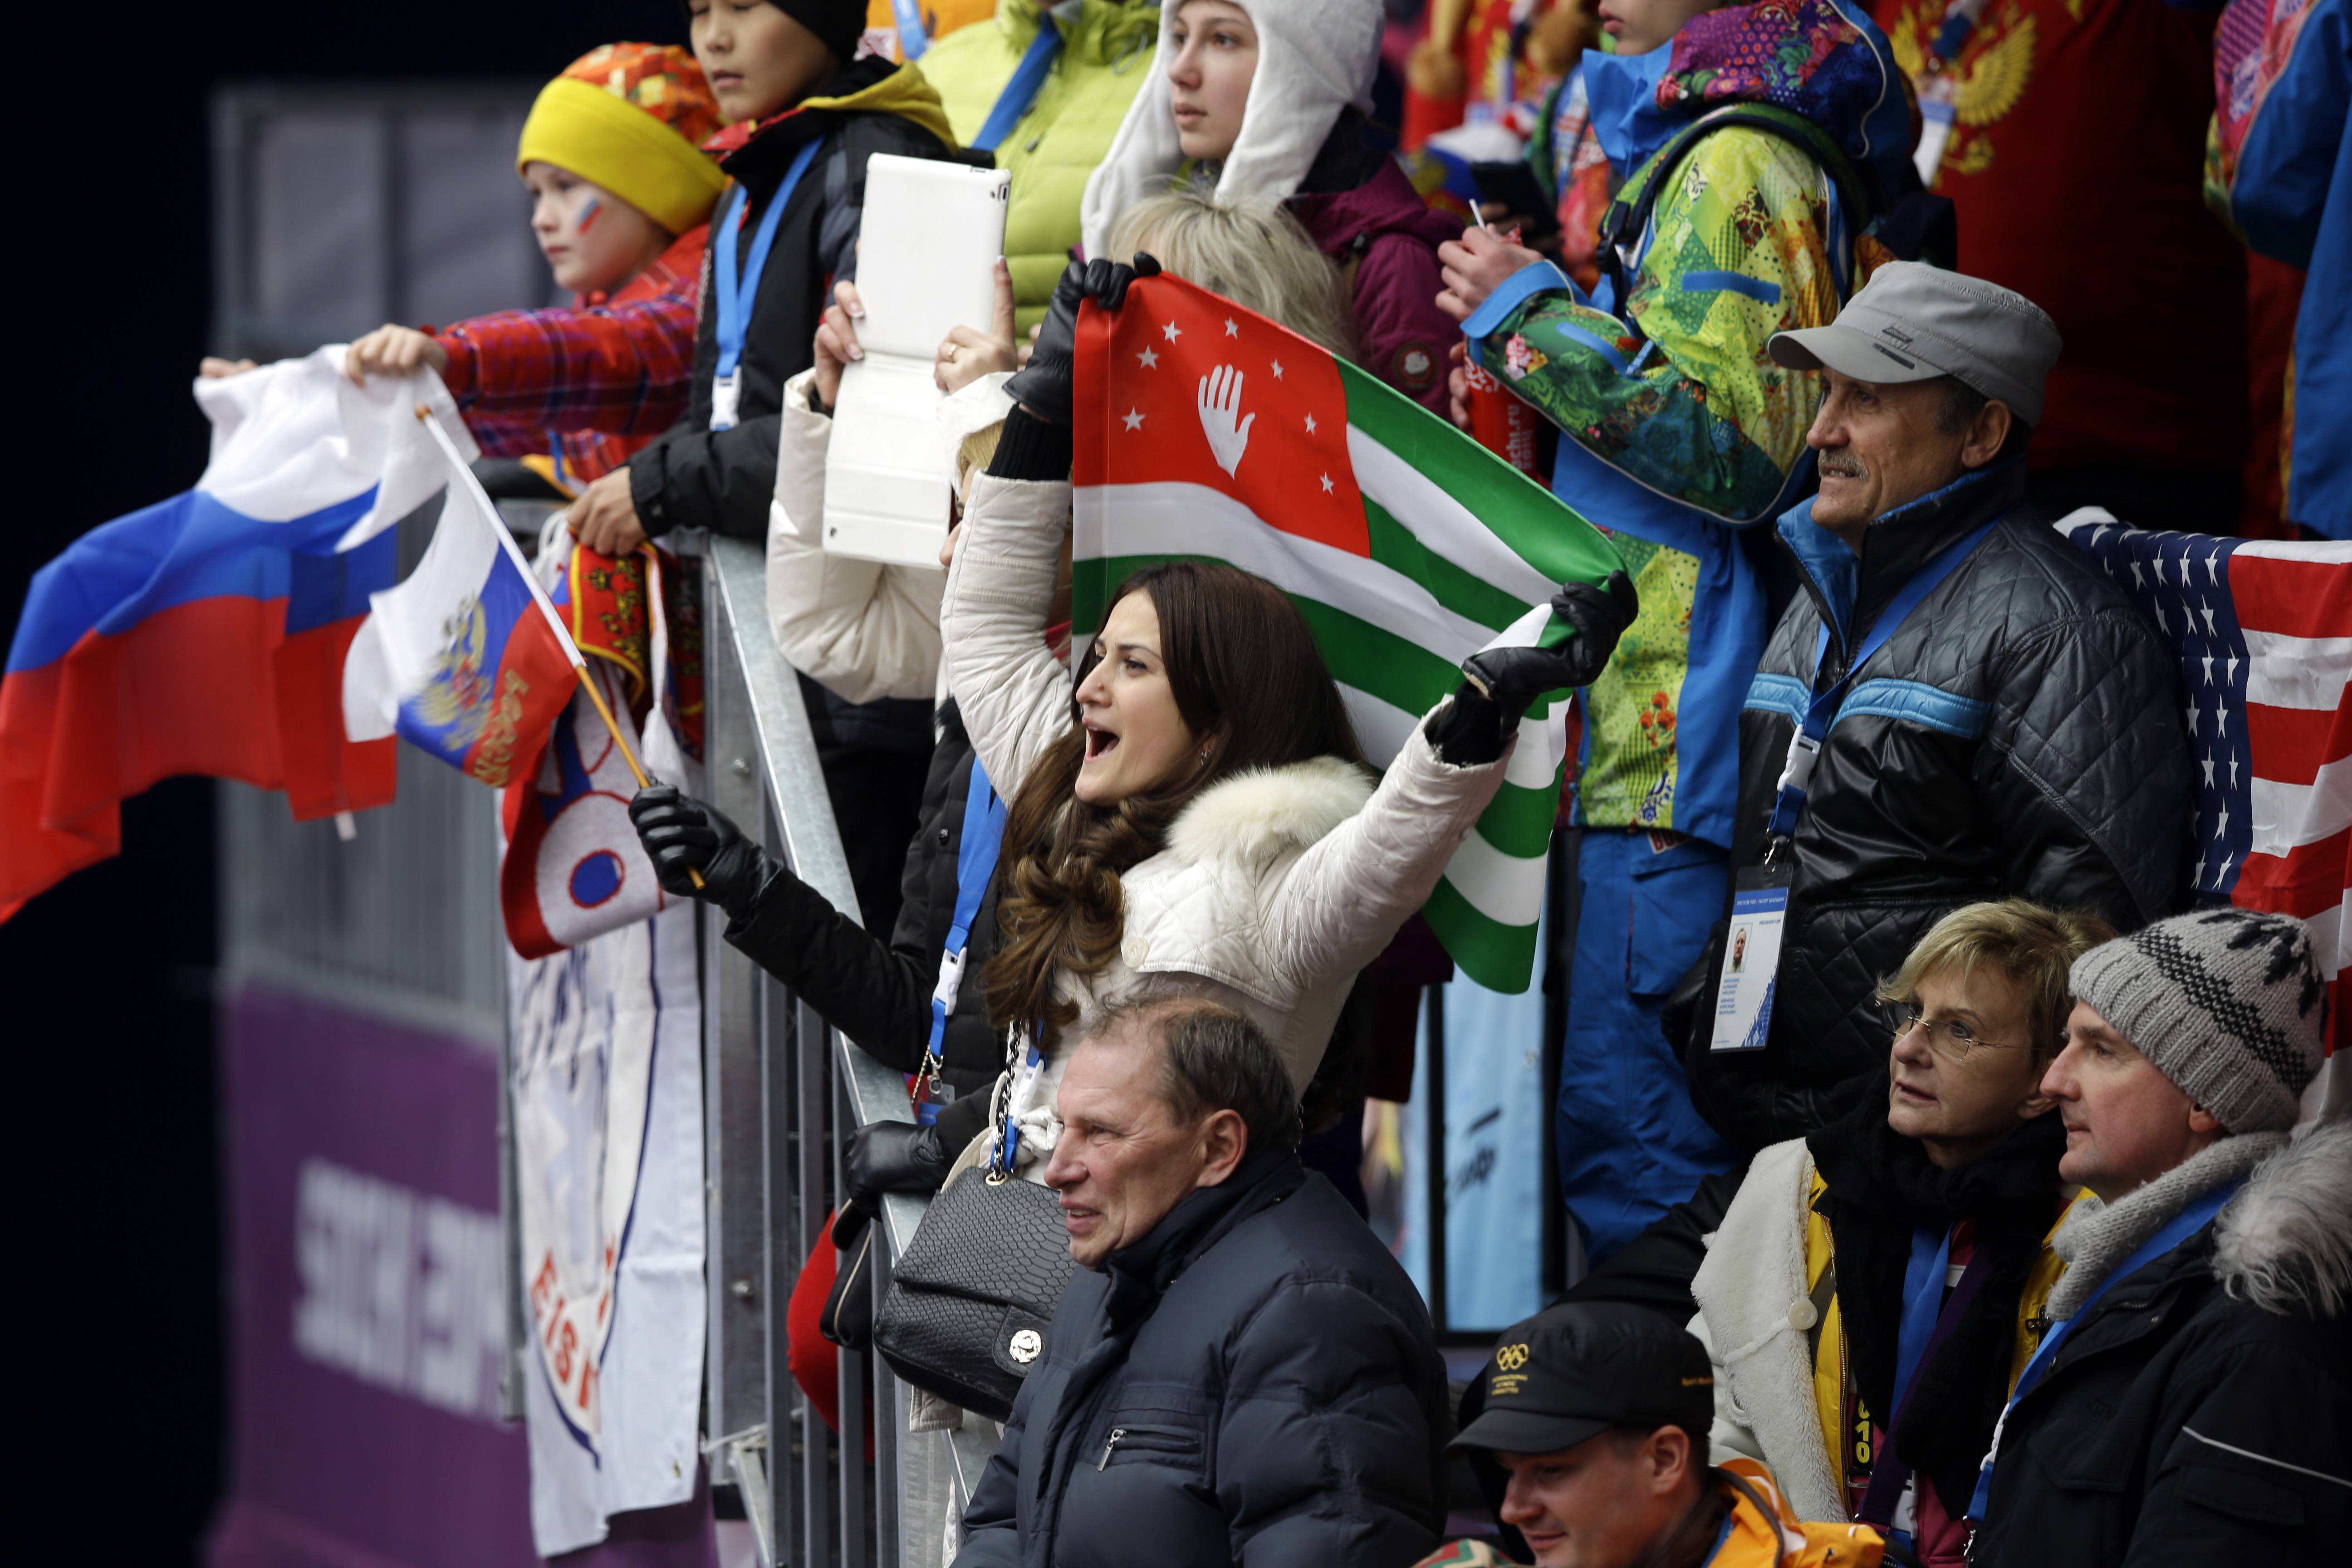 Fans cheer during the women's singles luge competition at the 2014 Winter Olympics, Monday, Feb. 10, 2014, in Krasnaya Polyana, Russia. (AP Photo/Dita Alangkara)